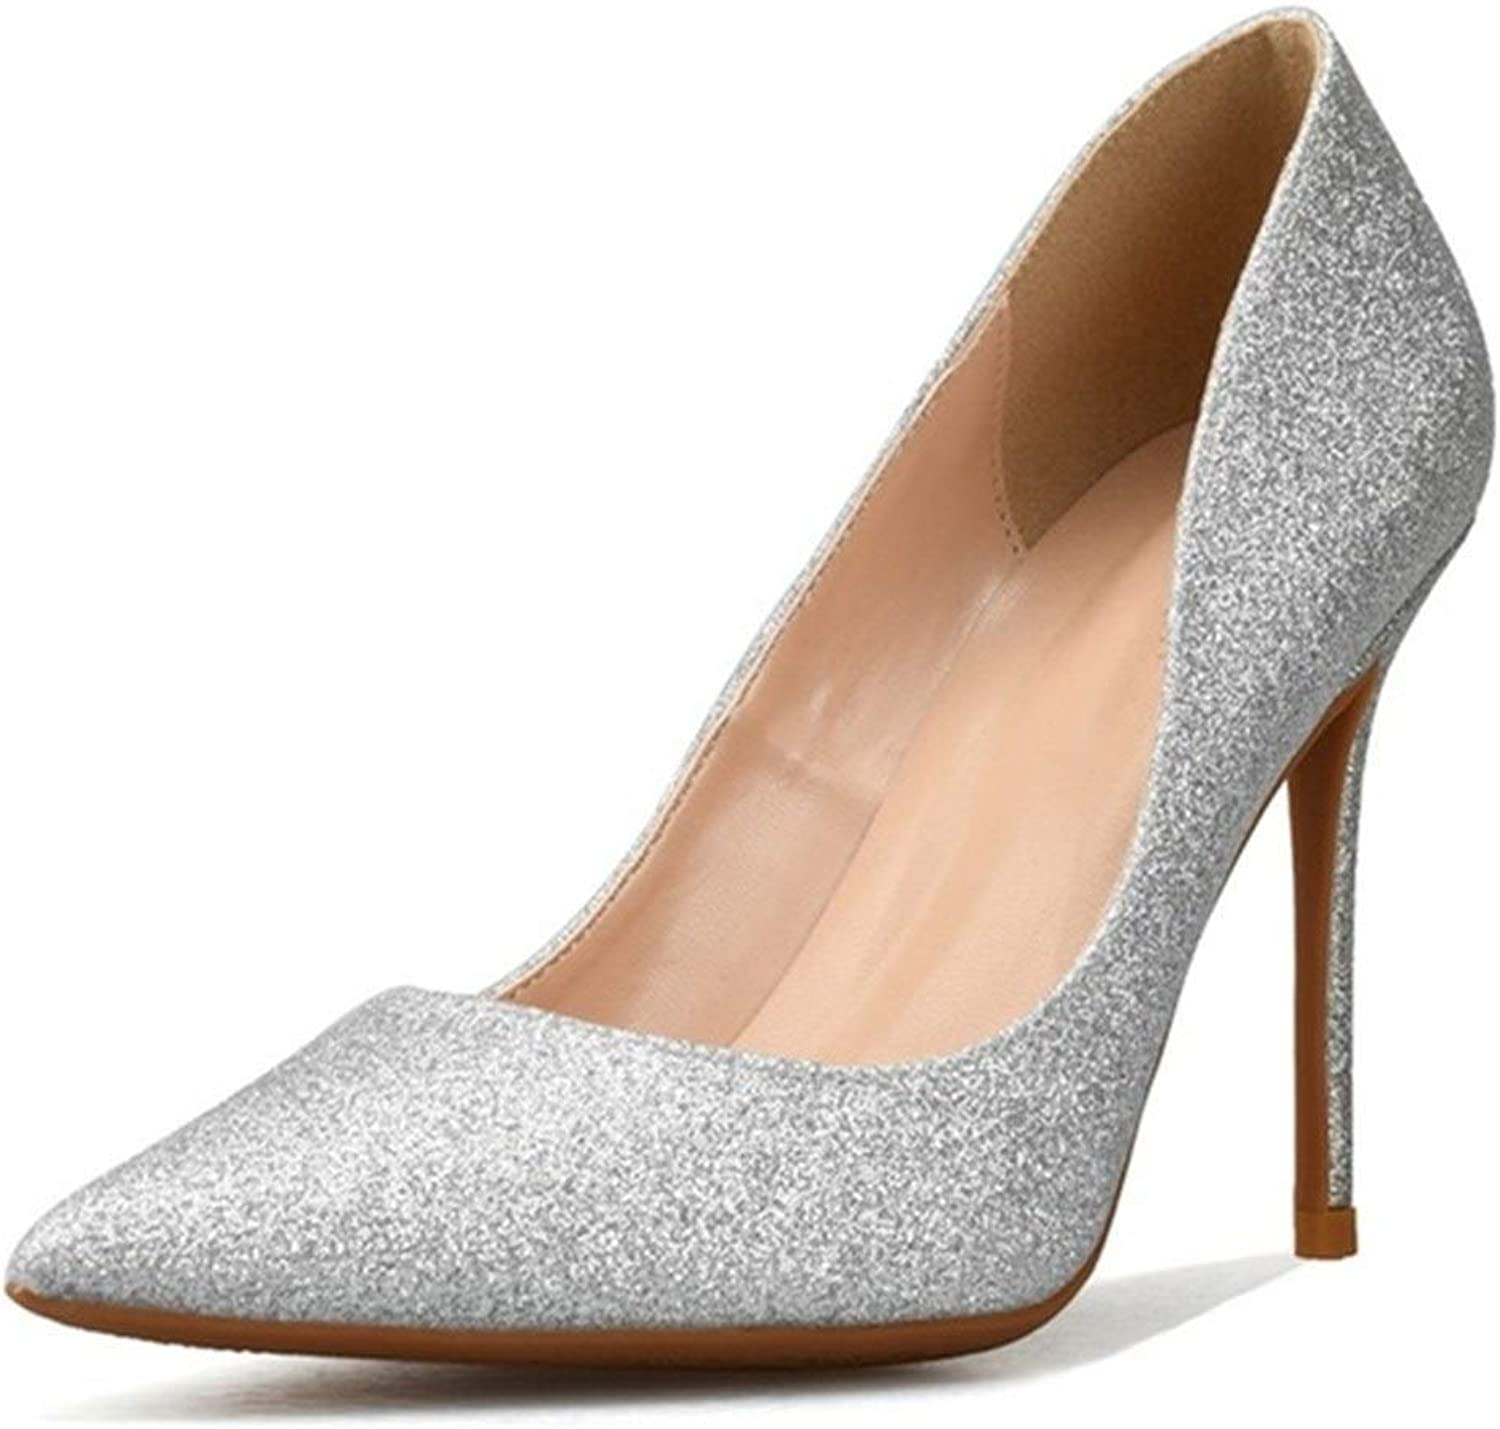 ZerenQ D'Orsay Pumps for Women High Stiletto Heels Glitter Dress shoes Pointed Toe Durable (color   Silver 8 cm Heel, Size   5.5 M US)